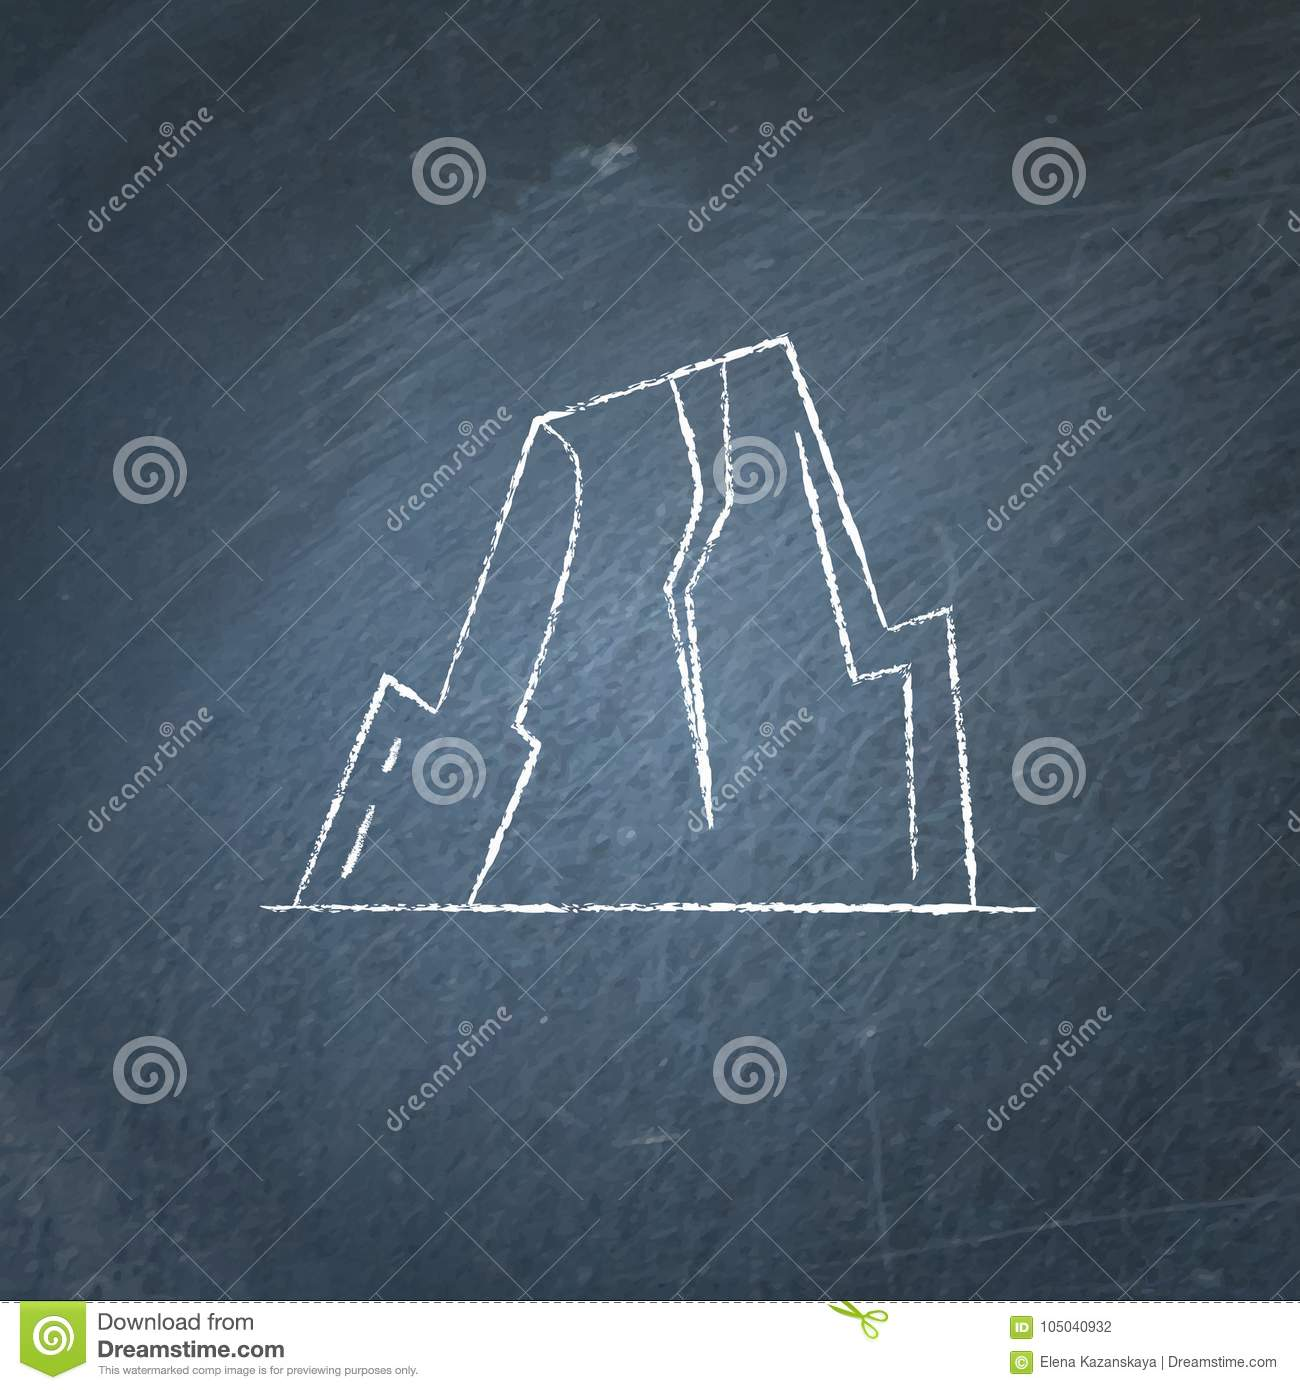 hight resolution of mountain with ledges icon on chalkboard rock with plateau symbol